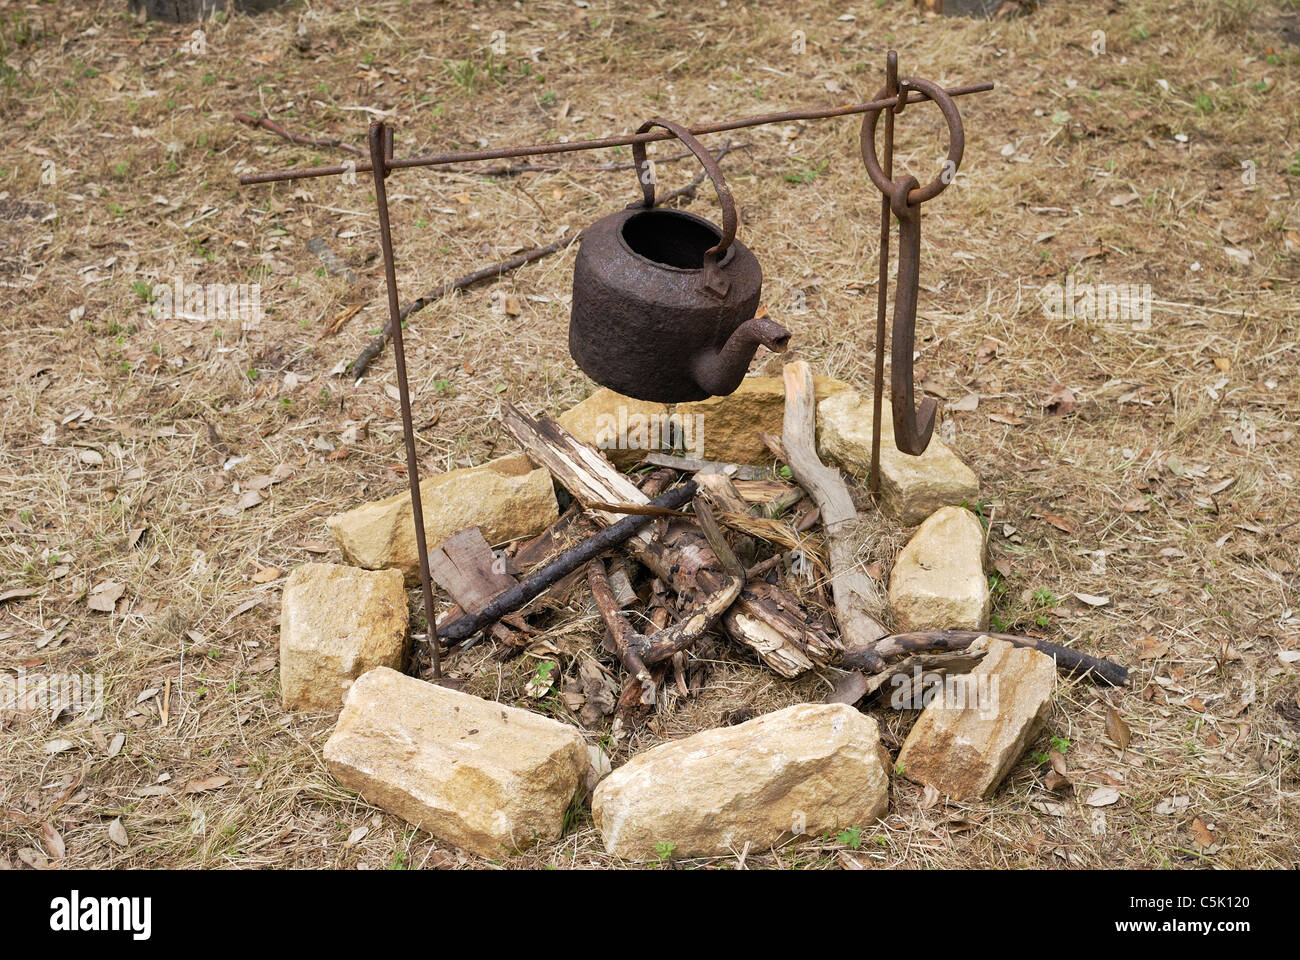 Old rusty kettle on iron frame over an unlit open fire outside in countryside - Stock Image